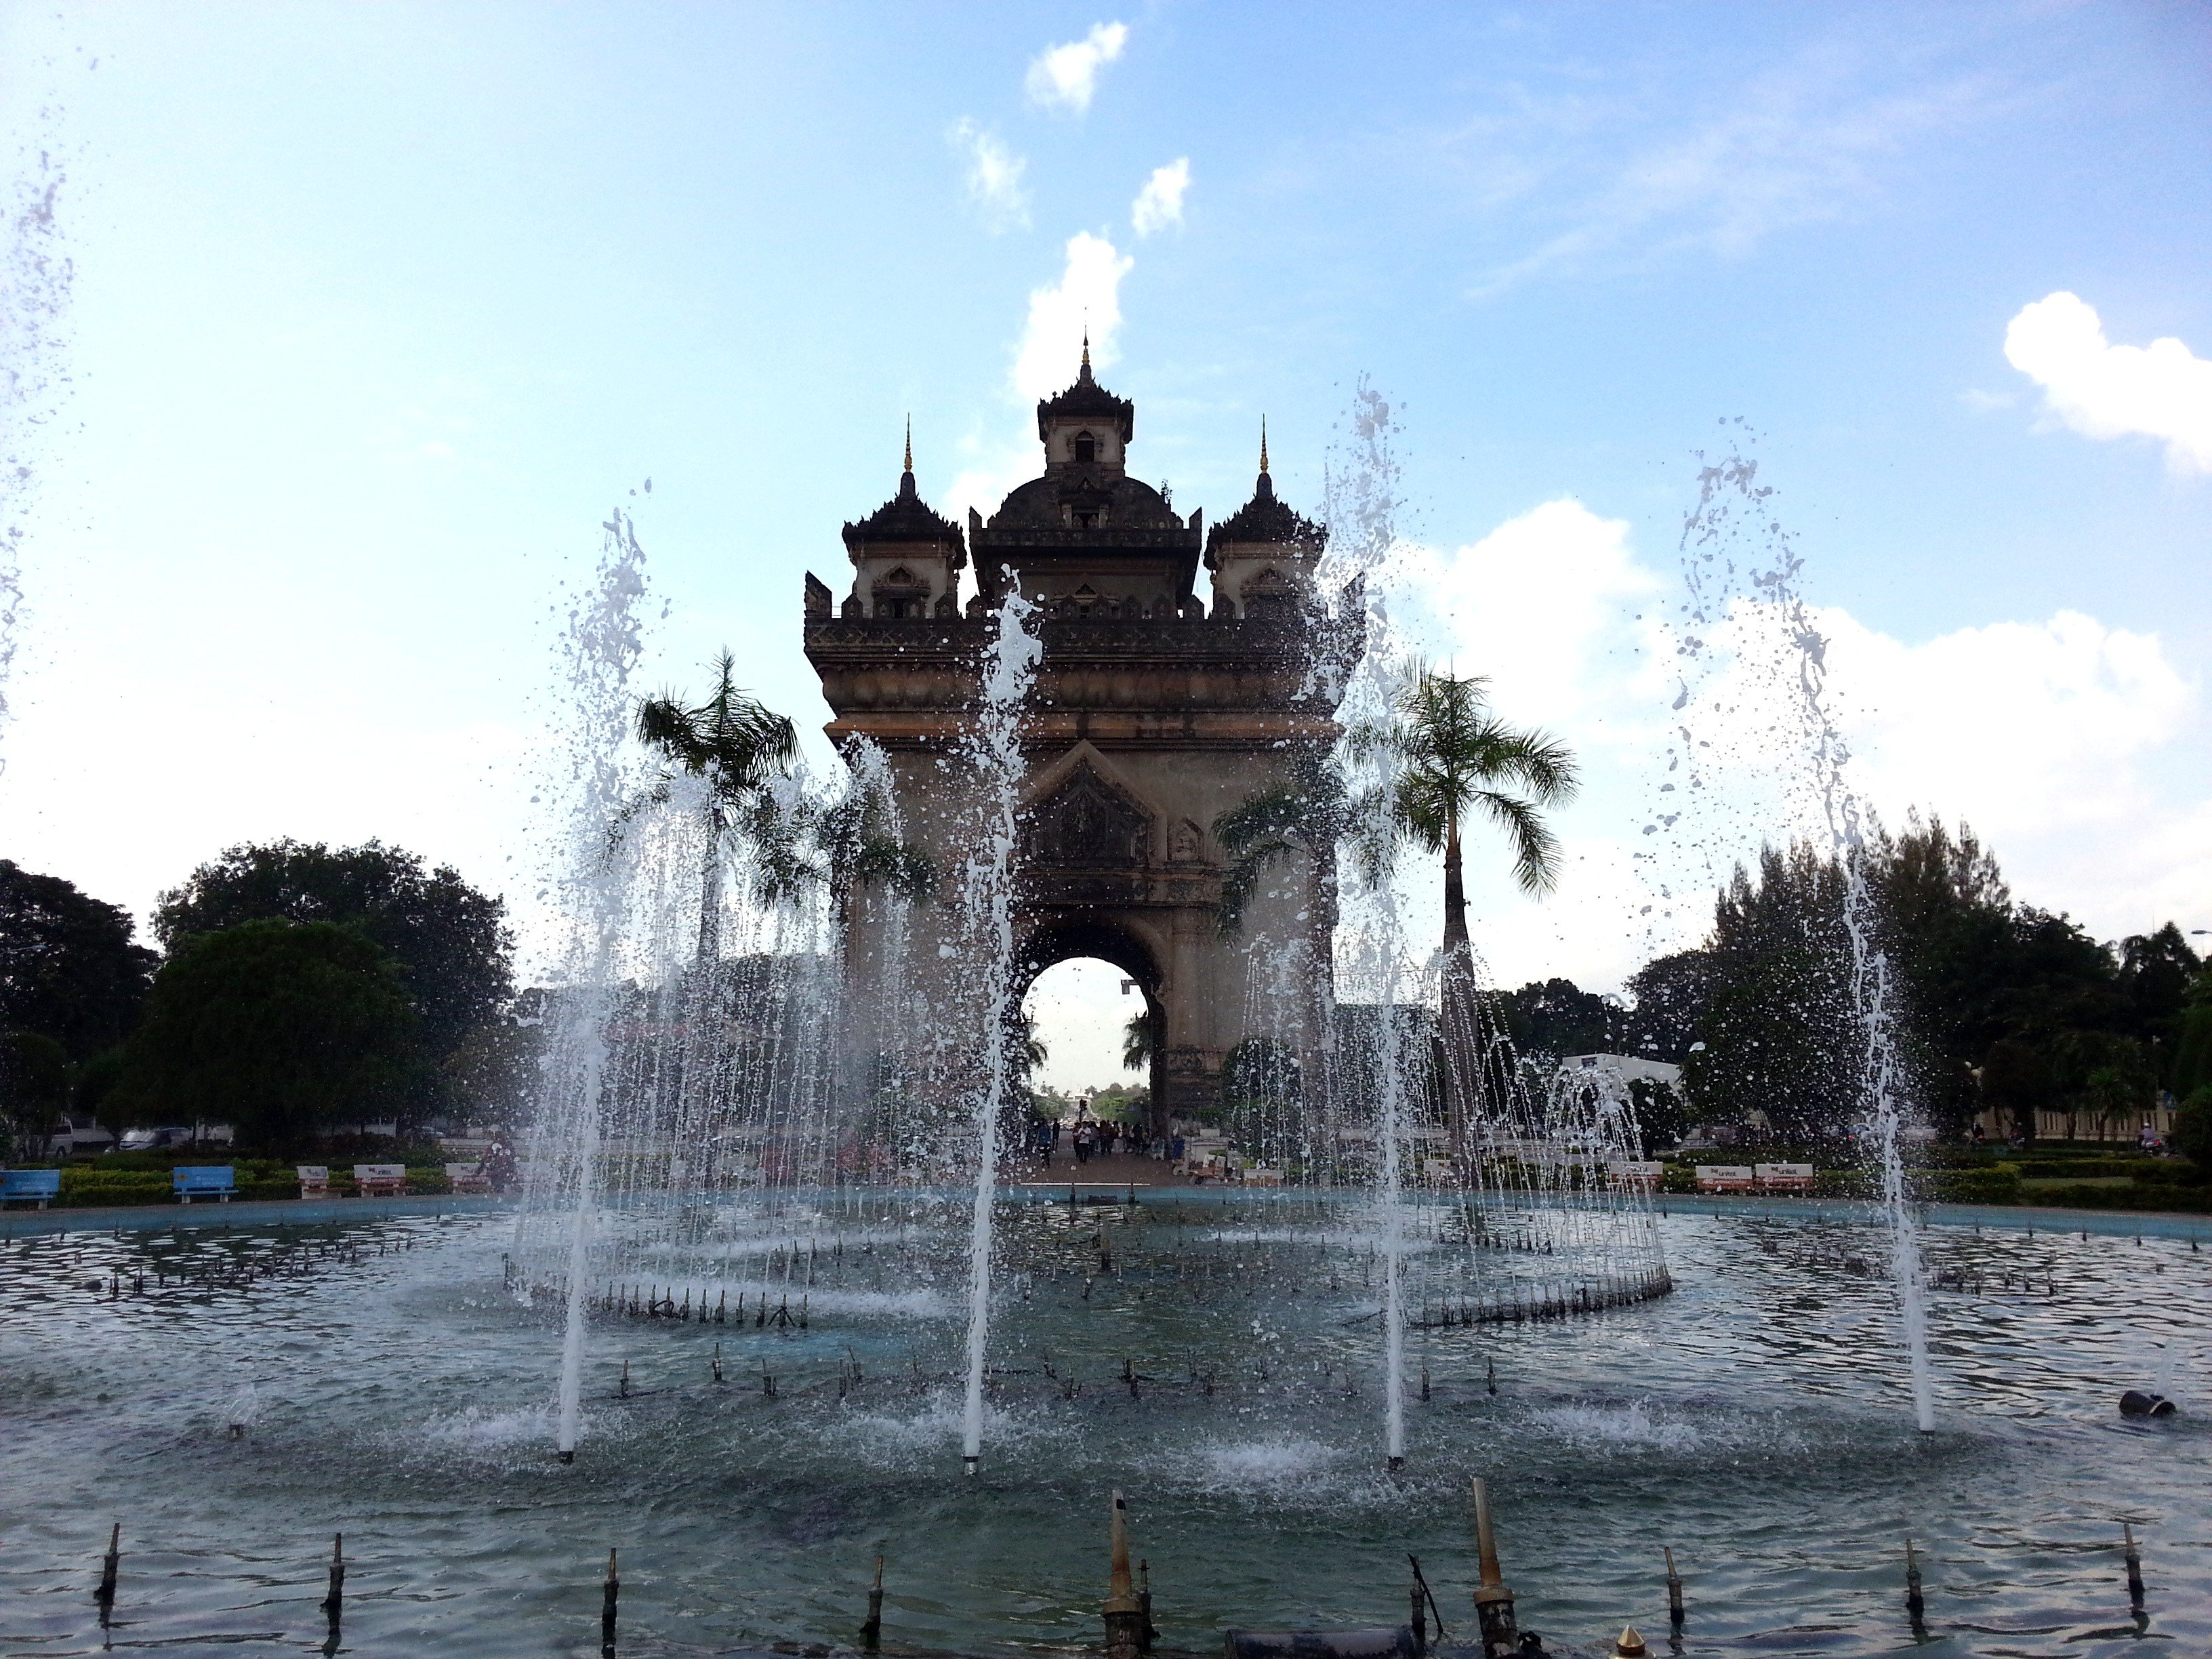 'nam phu' is the Thai word for fountain